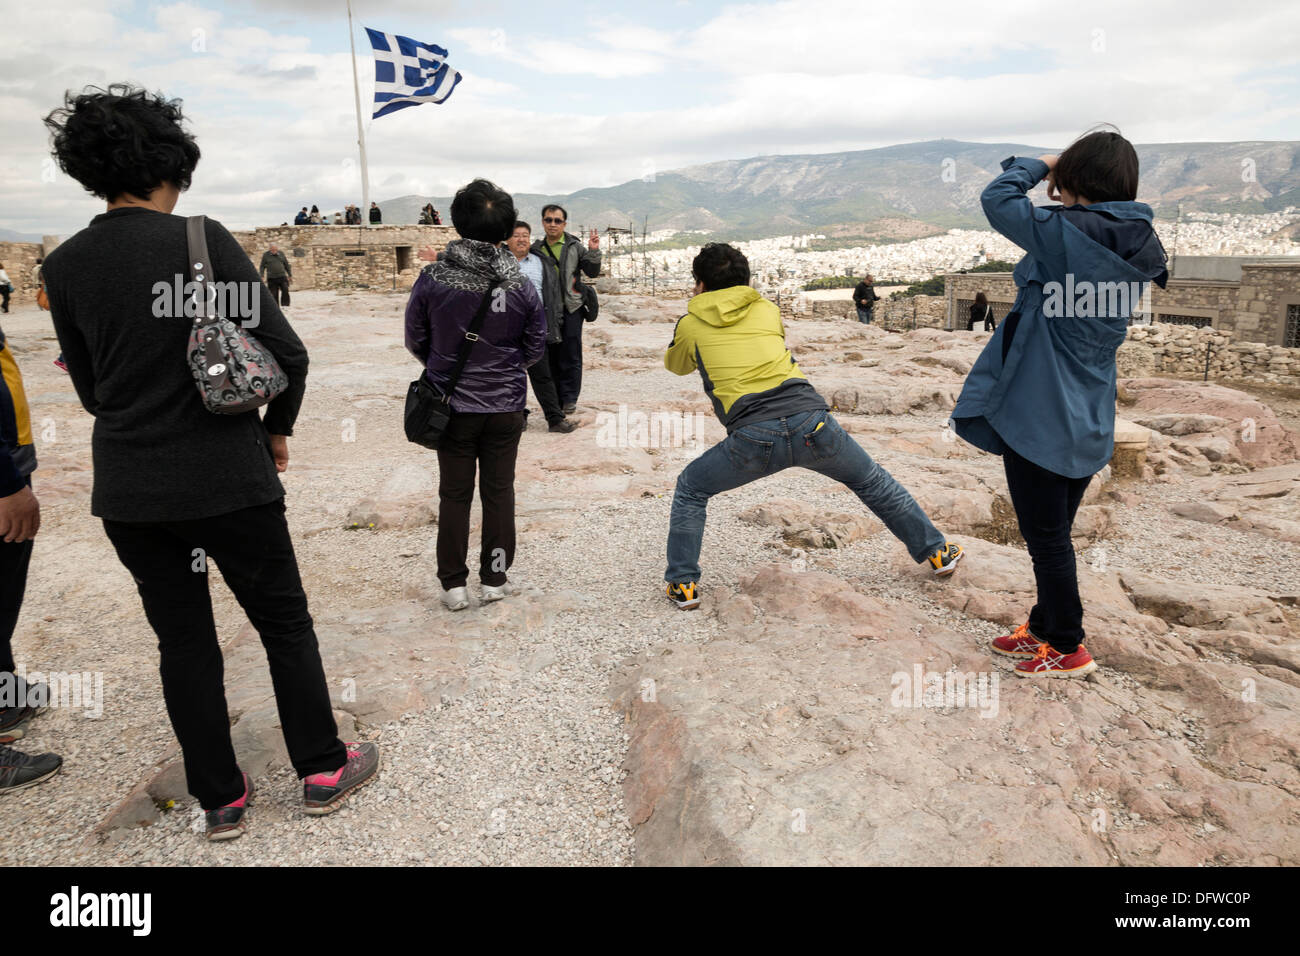 Tourists photographing each other on the Acropolis. Athens, Greece on October 4, 2013 - Stock Image